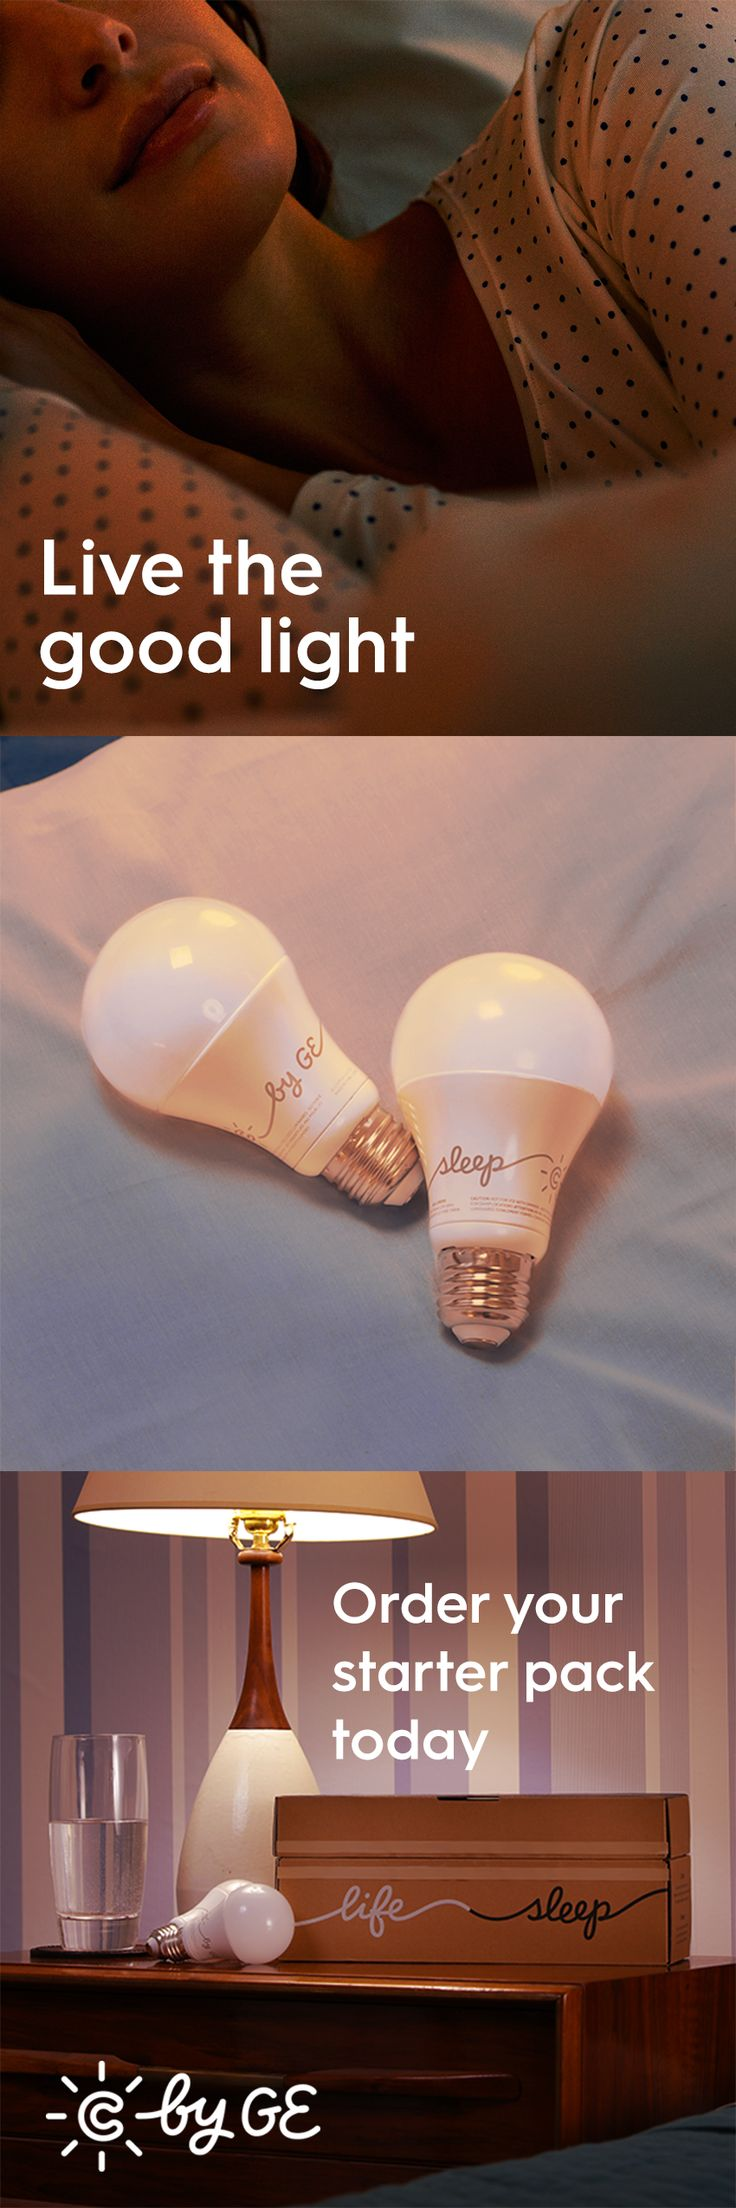 Sleep may be one of your favorite things so why not make the most of it? Research shows that a healthy day begins with a good night's sleep. C by GE light bulbs can affect your body's natural rhythms, giving you the right light to support your sleep cycle and start improving your life. Order your Starter Pack today!